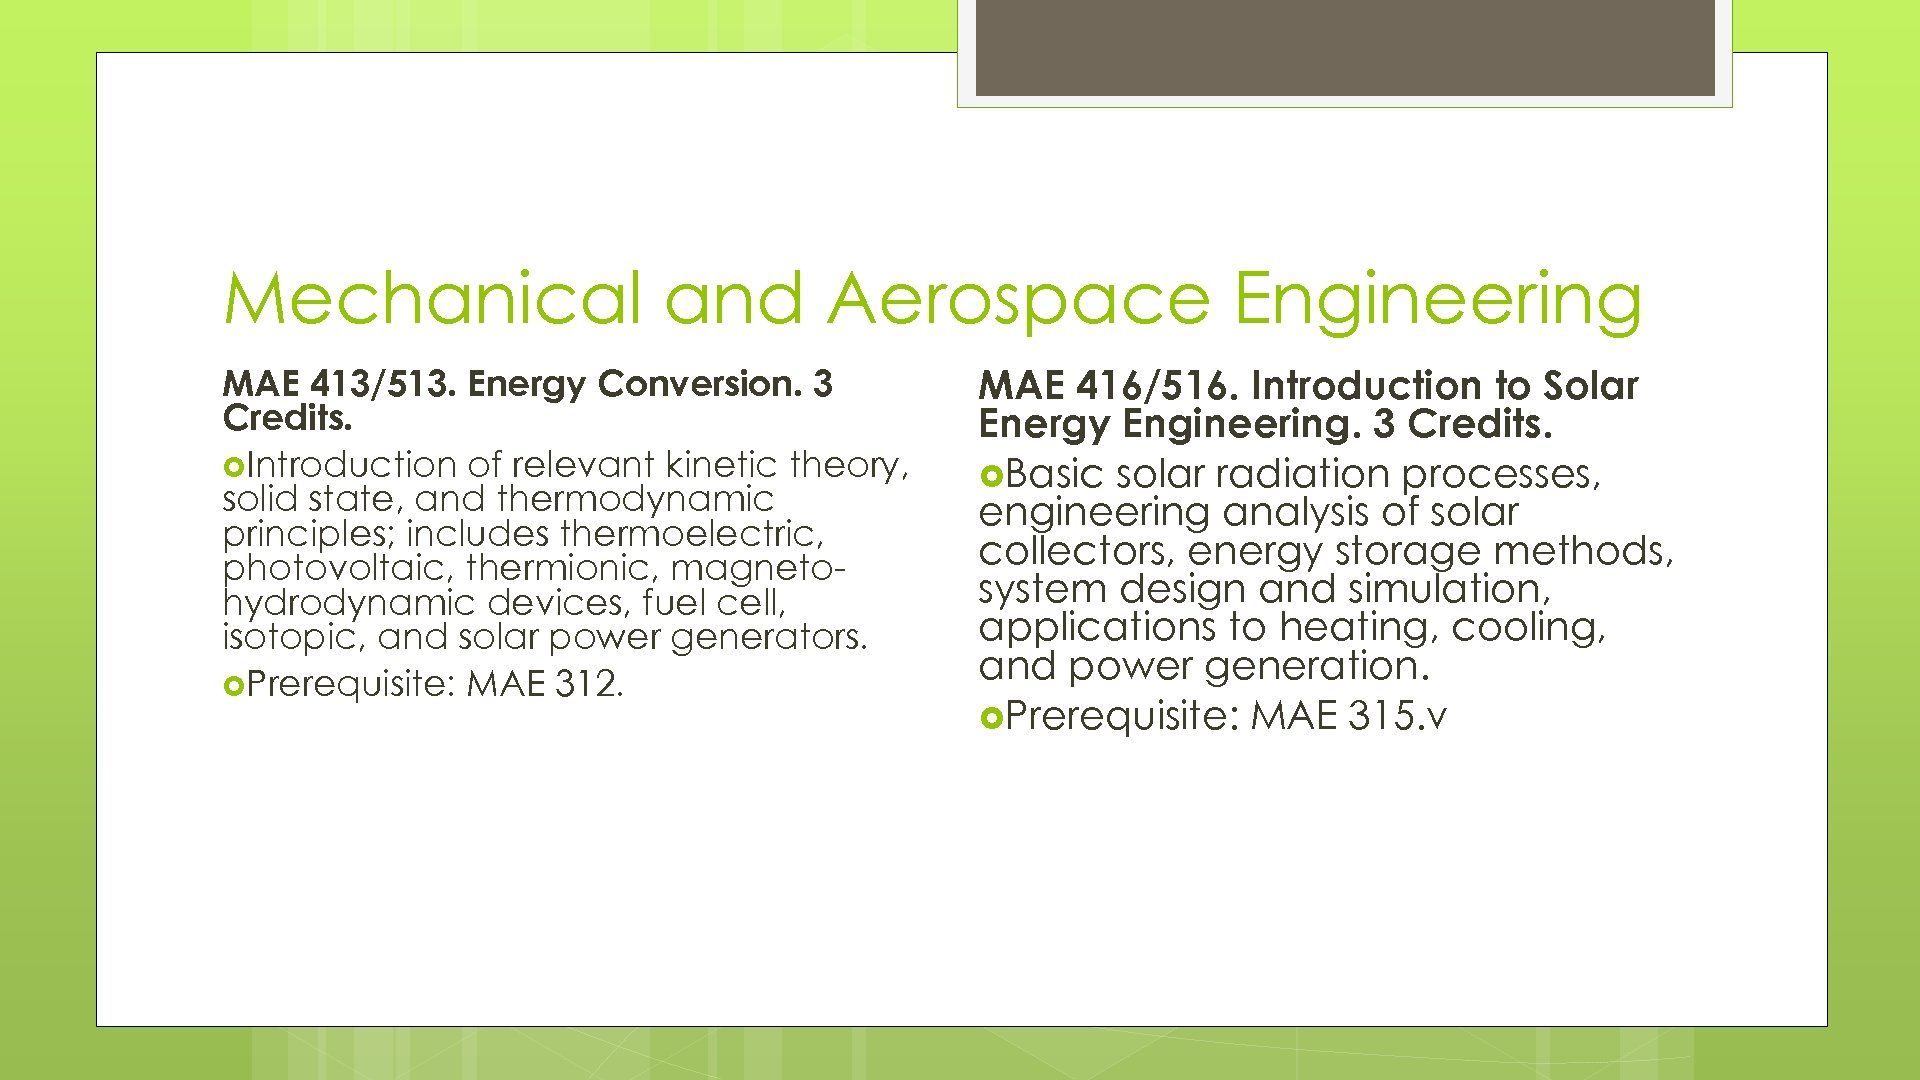 Mechanical and Aerospace Engineering MAE 413/513. Energy Conversion. 3 Credits. Introduction of relevant kinetic